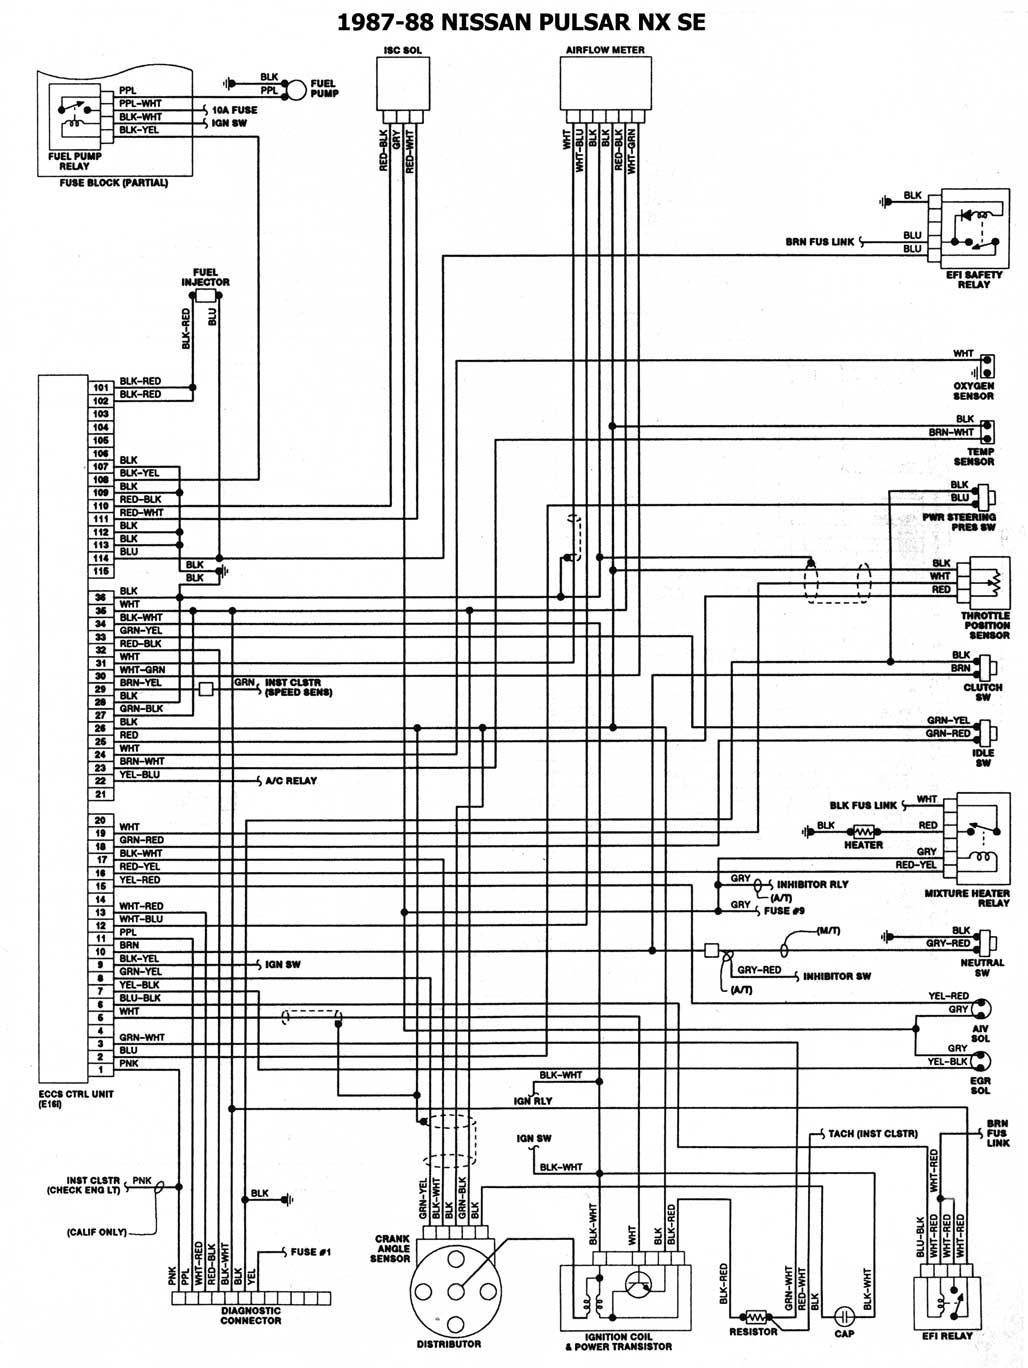 esqnis31 delco radio wiring schematic delco free wiring diagrams 1987 delco radio wiring diagram at bakdesigns.co